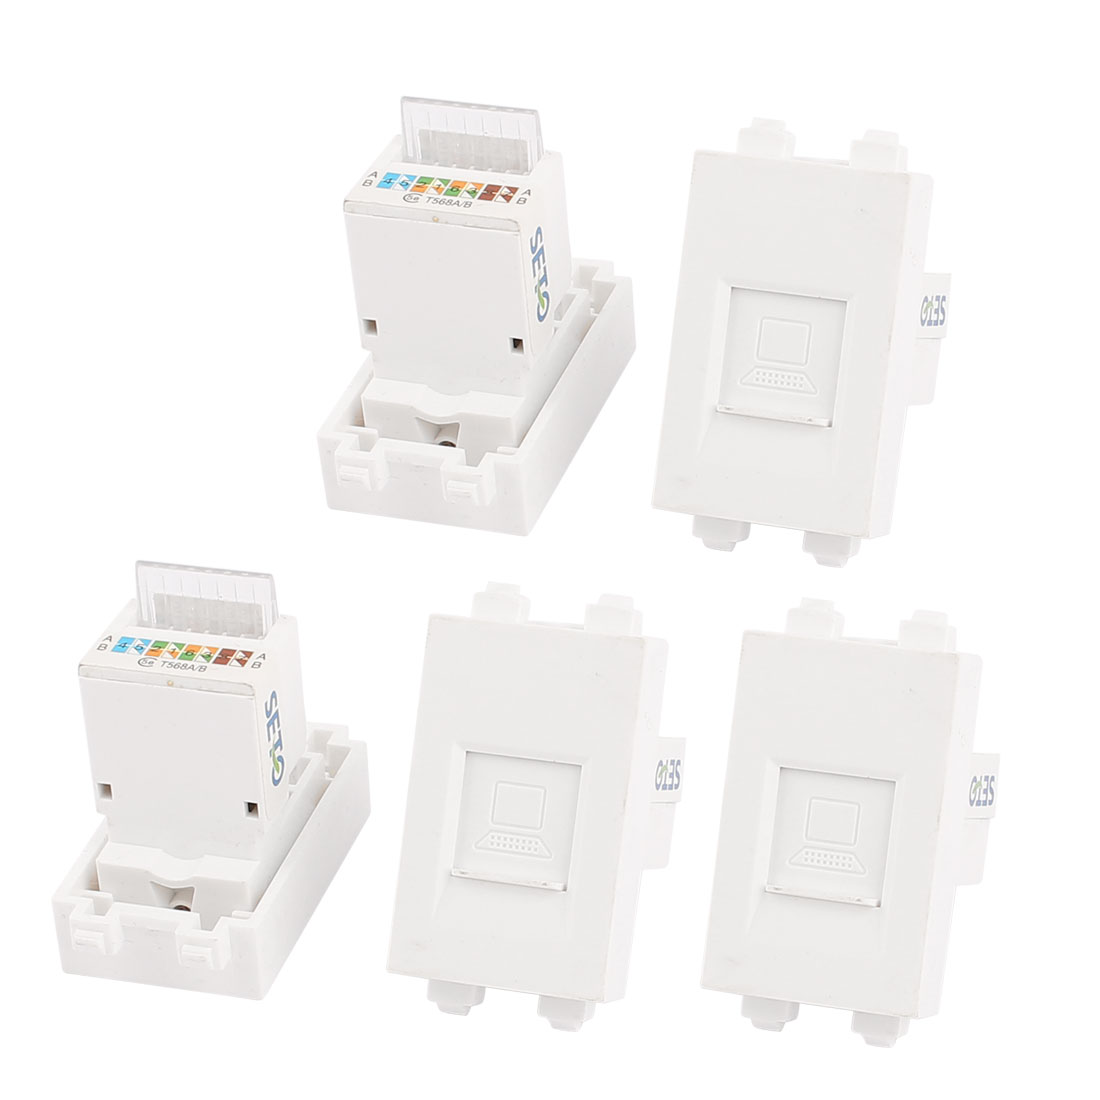 5 Pcs RJ45 8P8C PC Computer Network Coupler Connection Modular Socket for 128 Wall Plate Panel